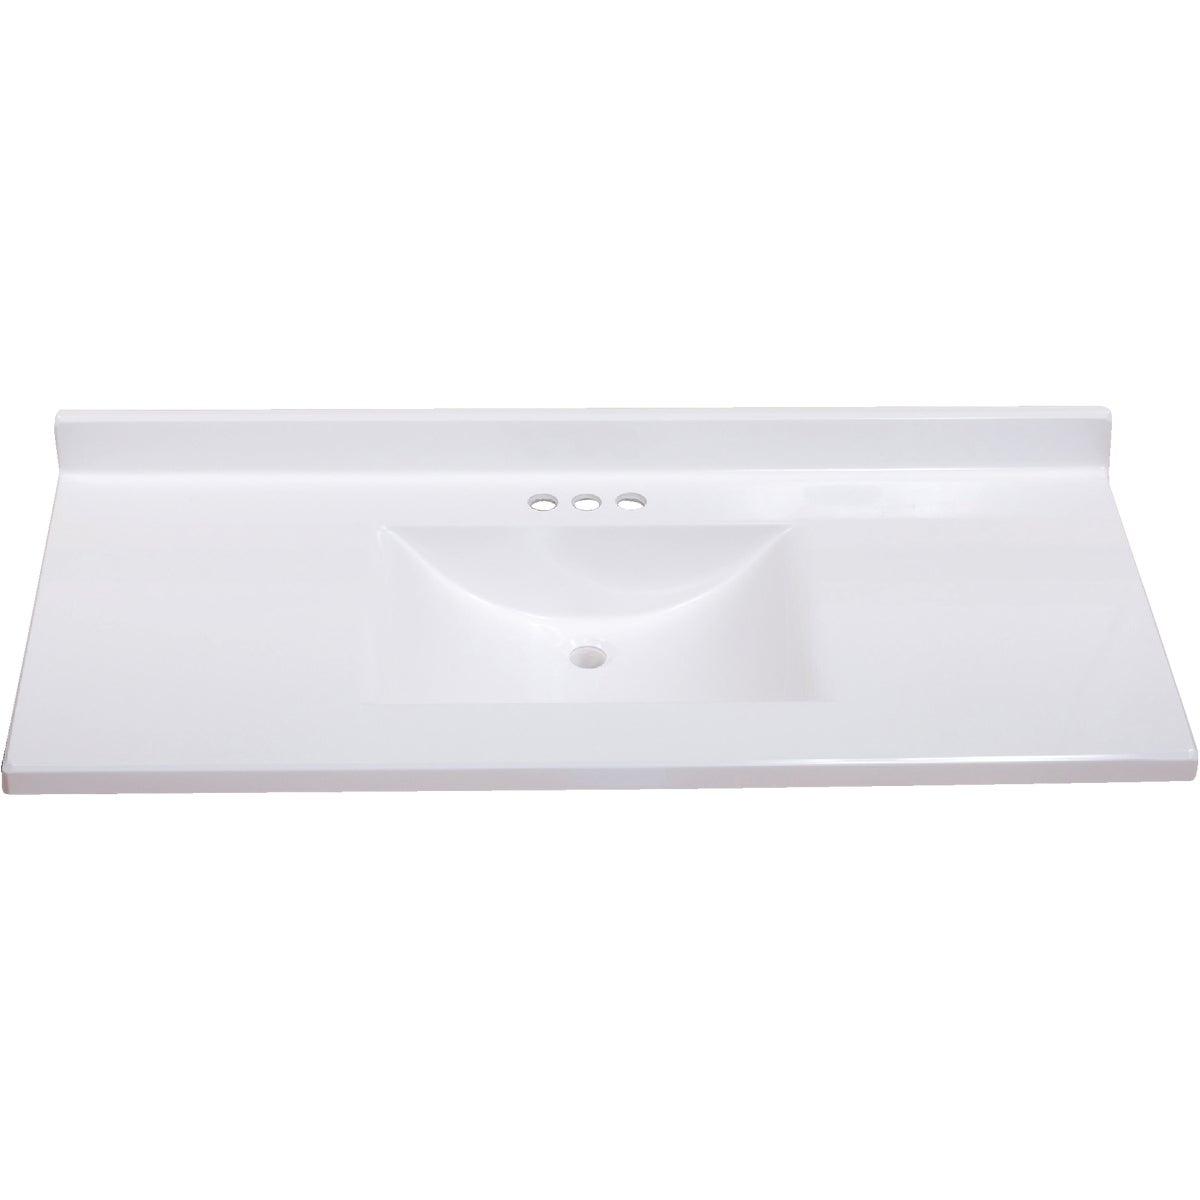 49X22 WHT WVE VANITY TOP - VW4922SPW by Imperial Marble Corp